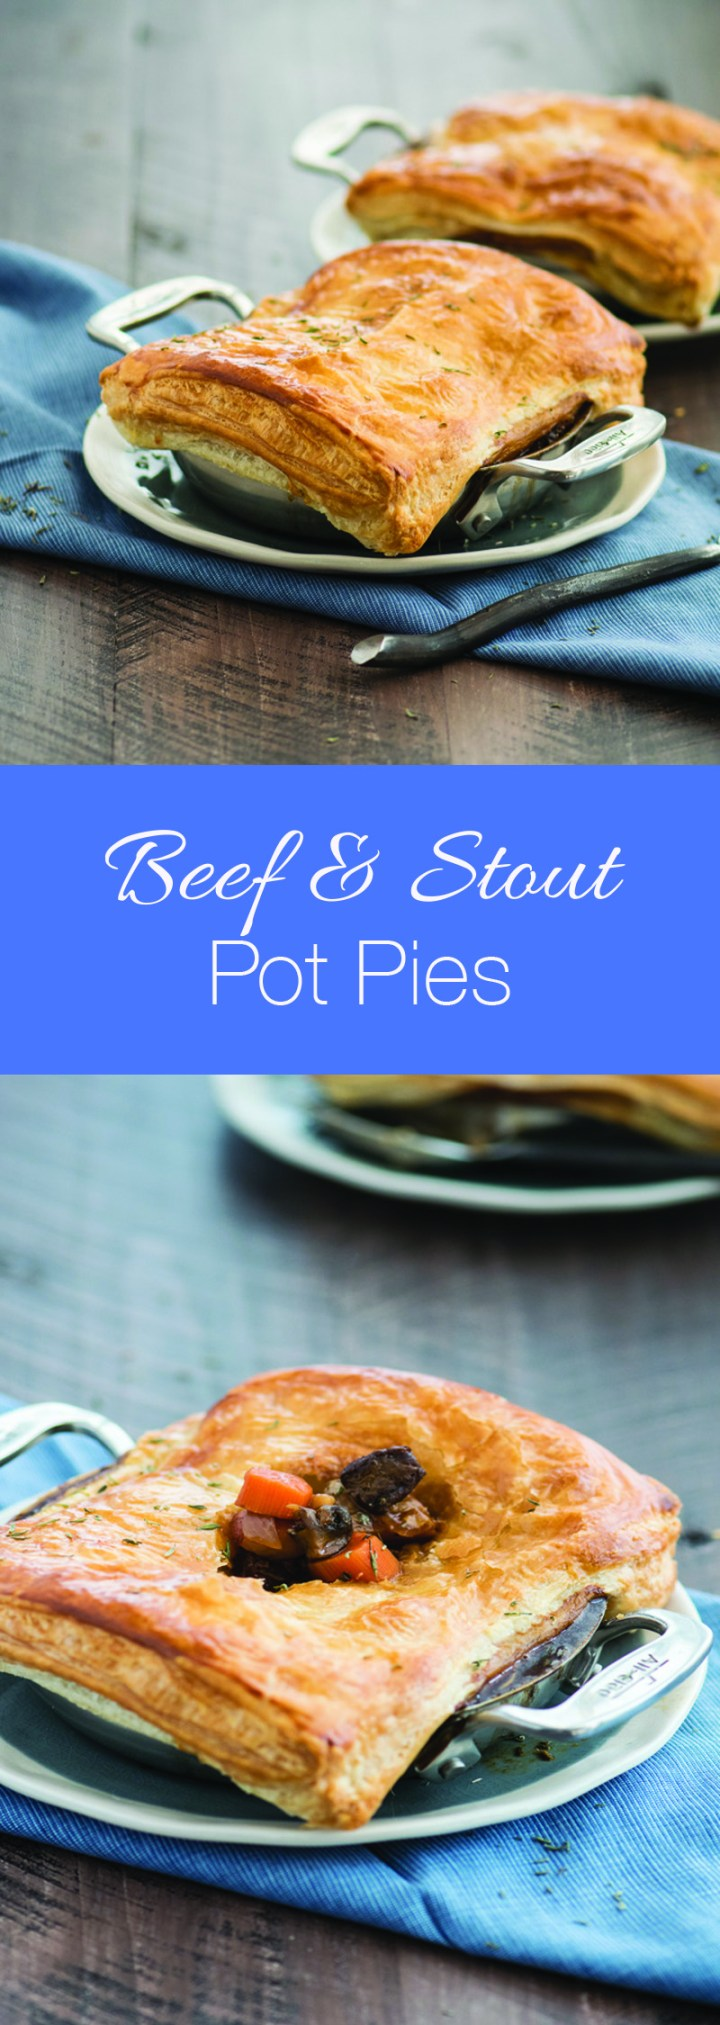 These Mini Beef &Stout Pot Pies with a flaky blue cheesecrust are delicious comfort food for the late winter season!